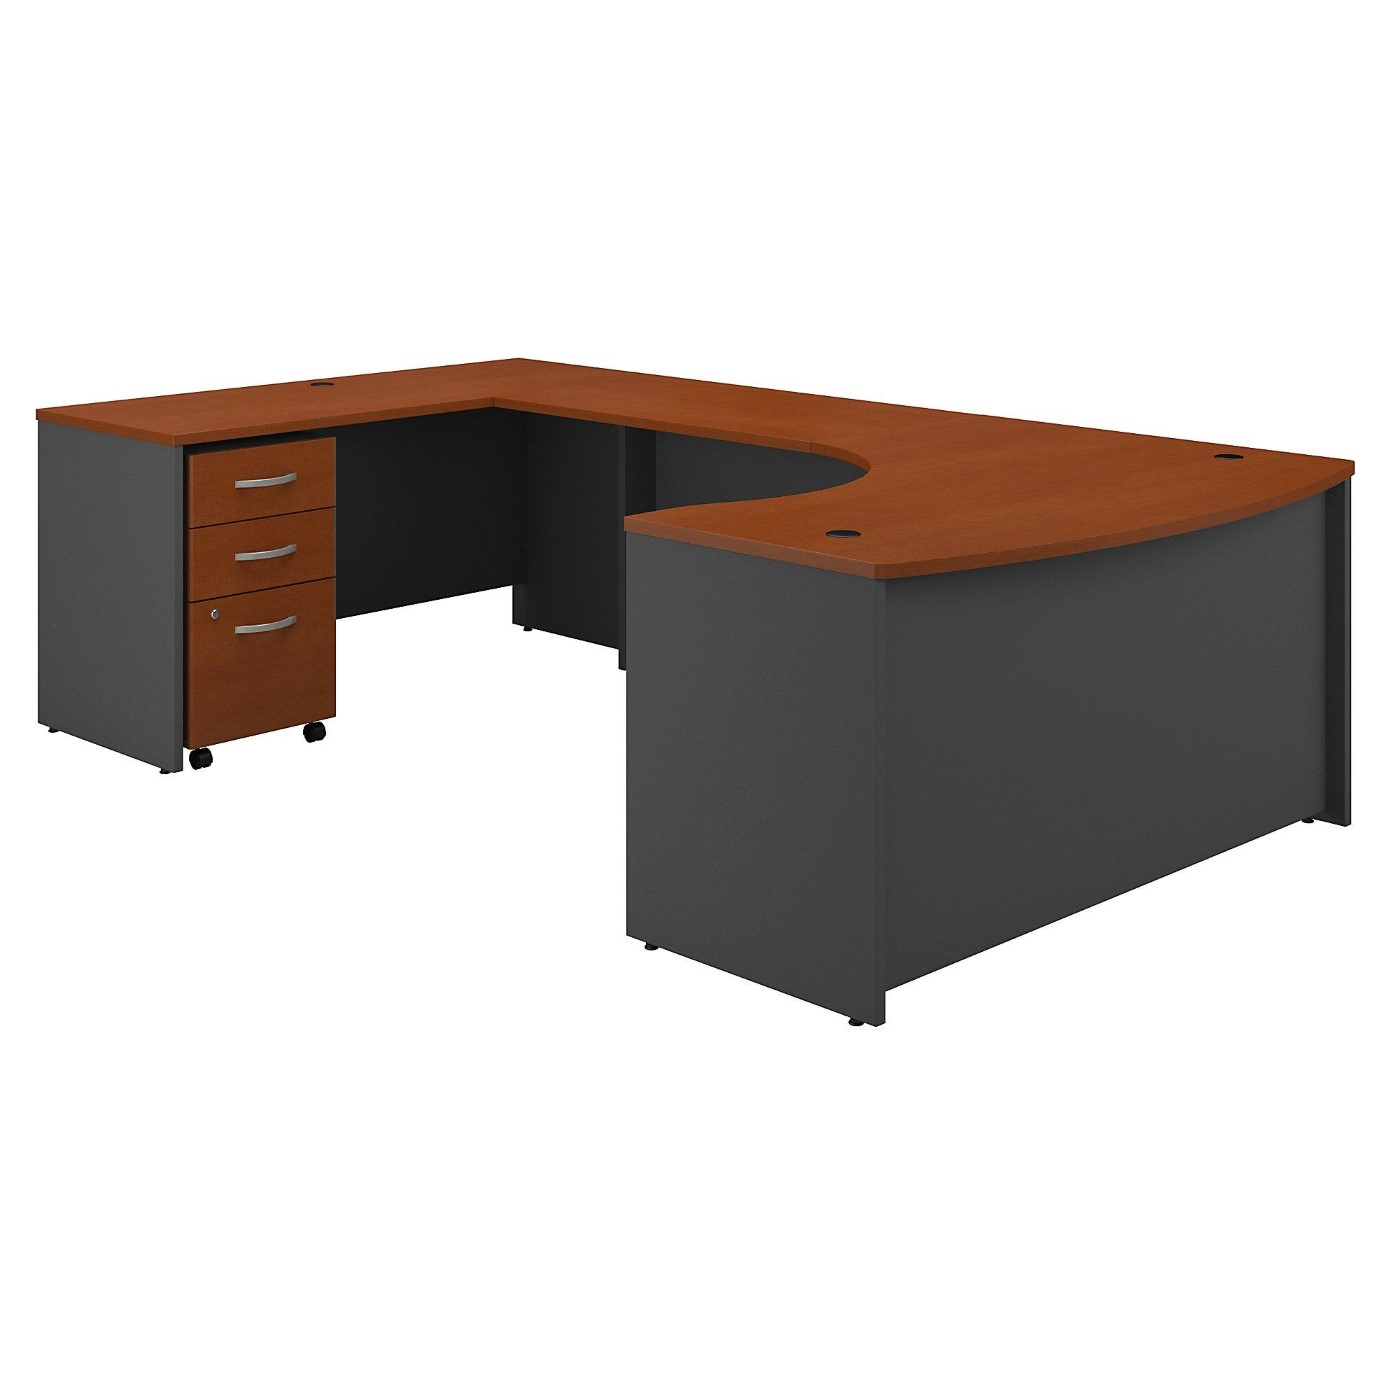 BUSH BUSINESS FURNITURE SERIES C 60W RIGHT HANDED BOW FRONT U SHAPED DESK WITH MOBILE FILE CABINET. FREE SHIPPING  VIDEO BELOW.